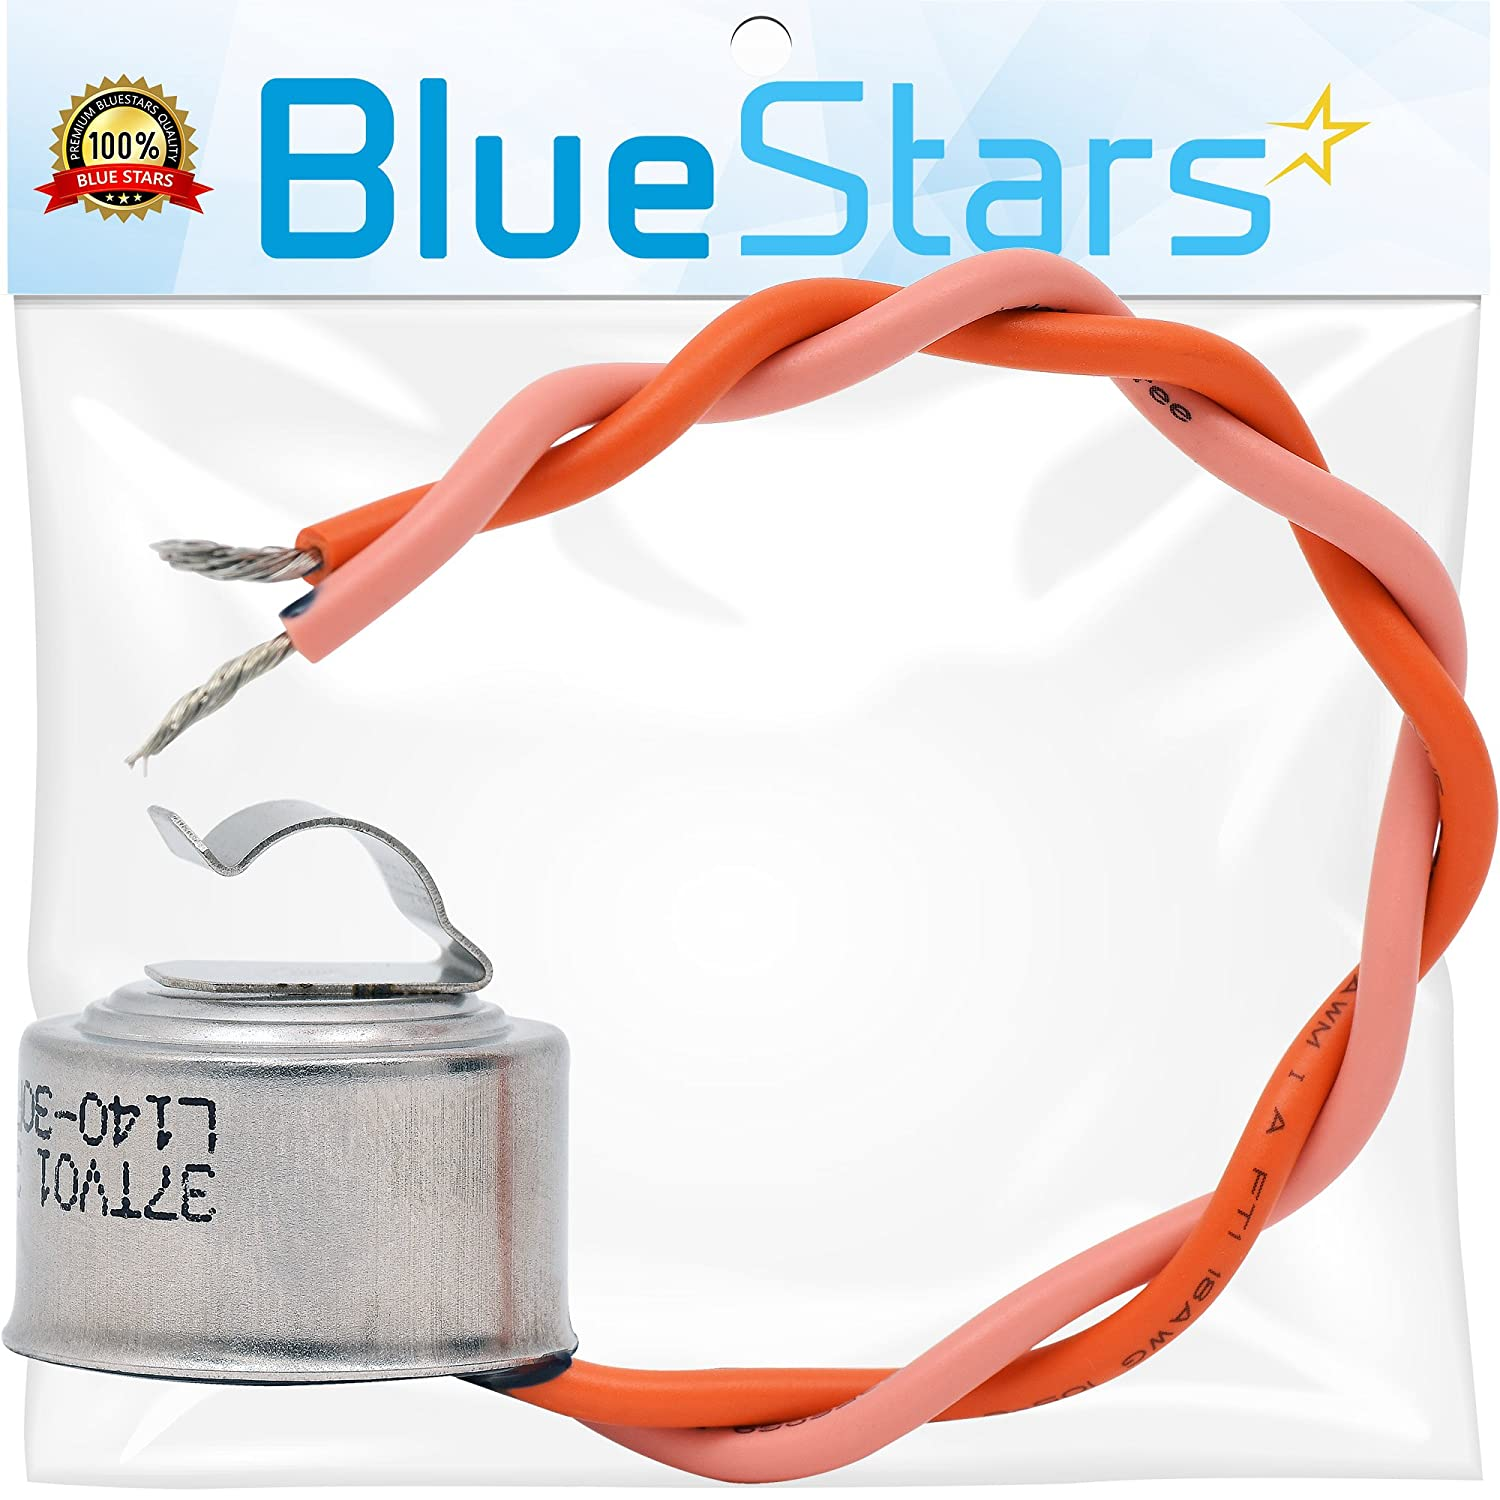 WR50X10068 Defrost Thermostat Replacement Part by Blue Stars - Exact Fit for GE Refrigerators - Replaces AP3884317 PS1017716